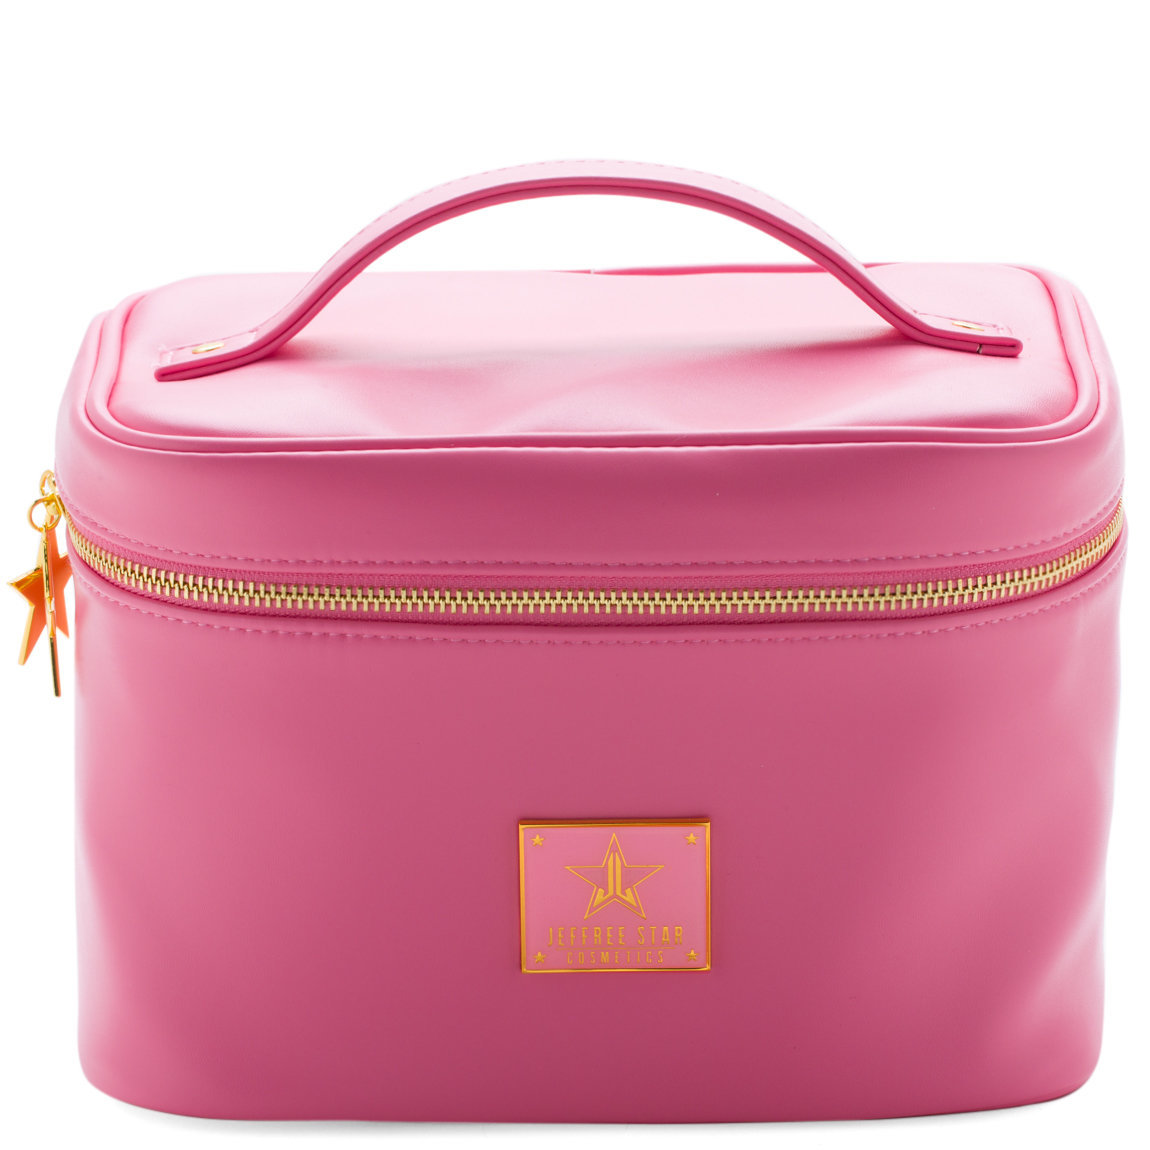 Jeffree Star Cosmetics Travel Makeup Bag Baby Pink product smear.